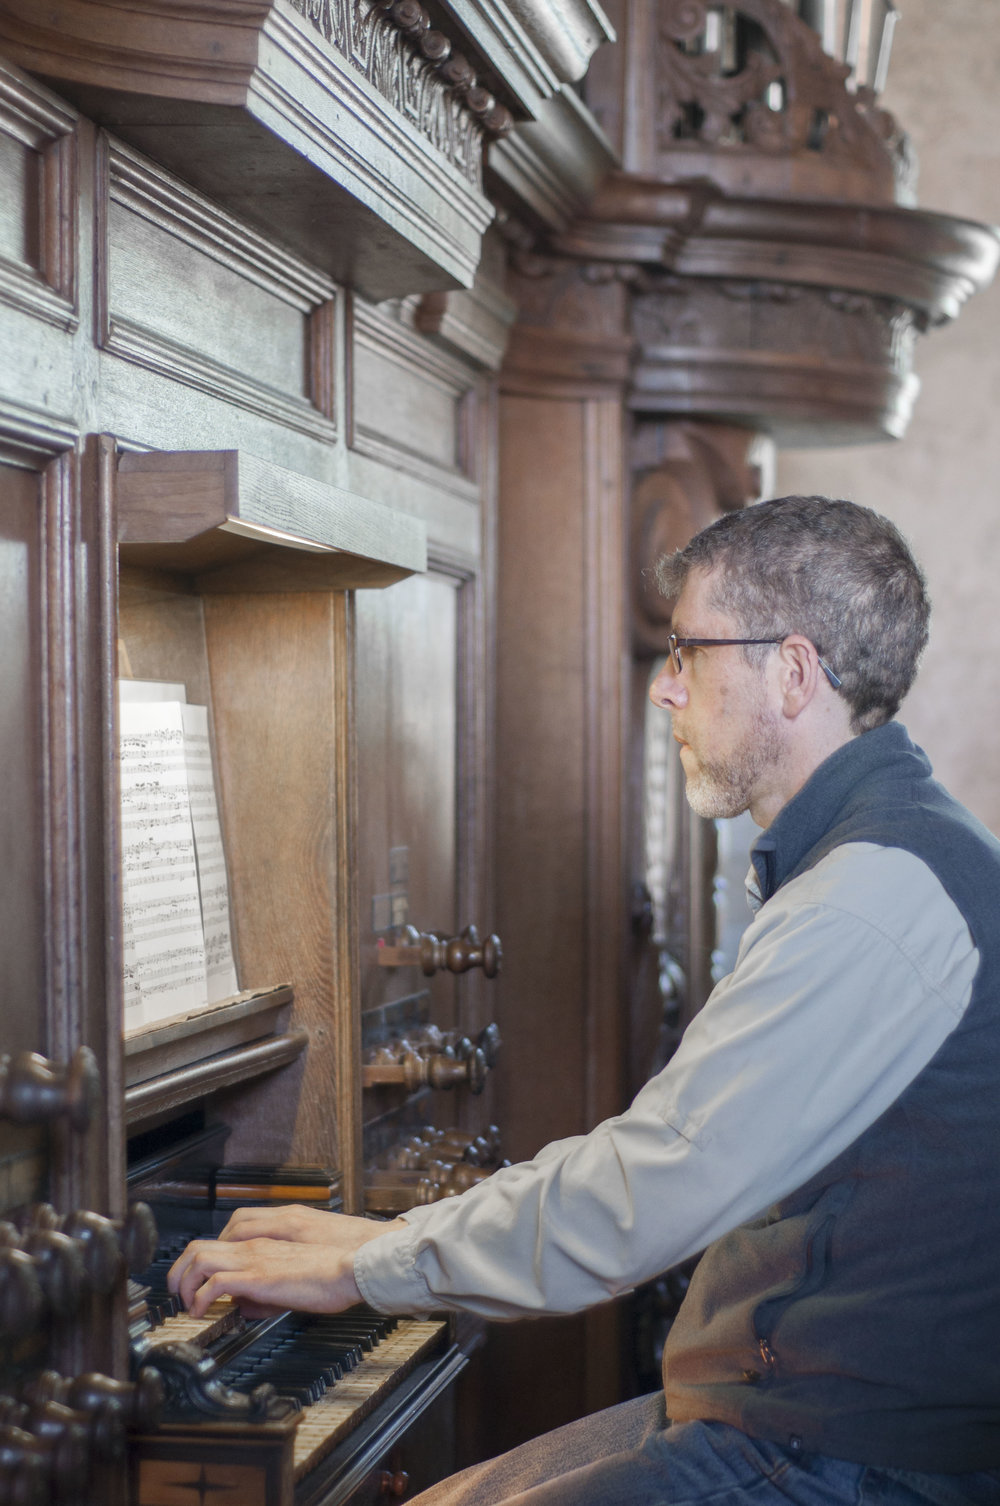 Chris Porter plays the 1733 Hinsz Organ in Leeds, Holland.